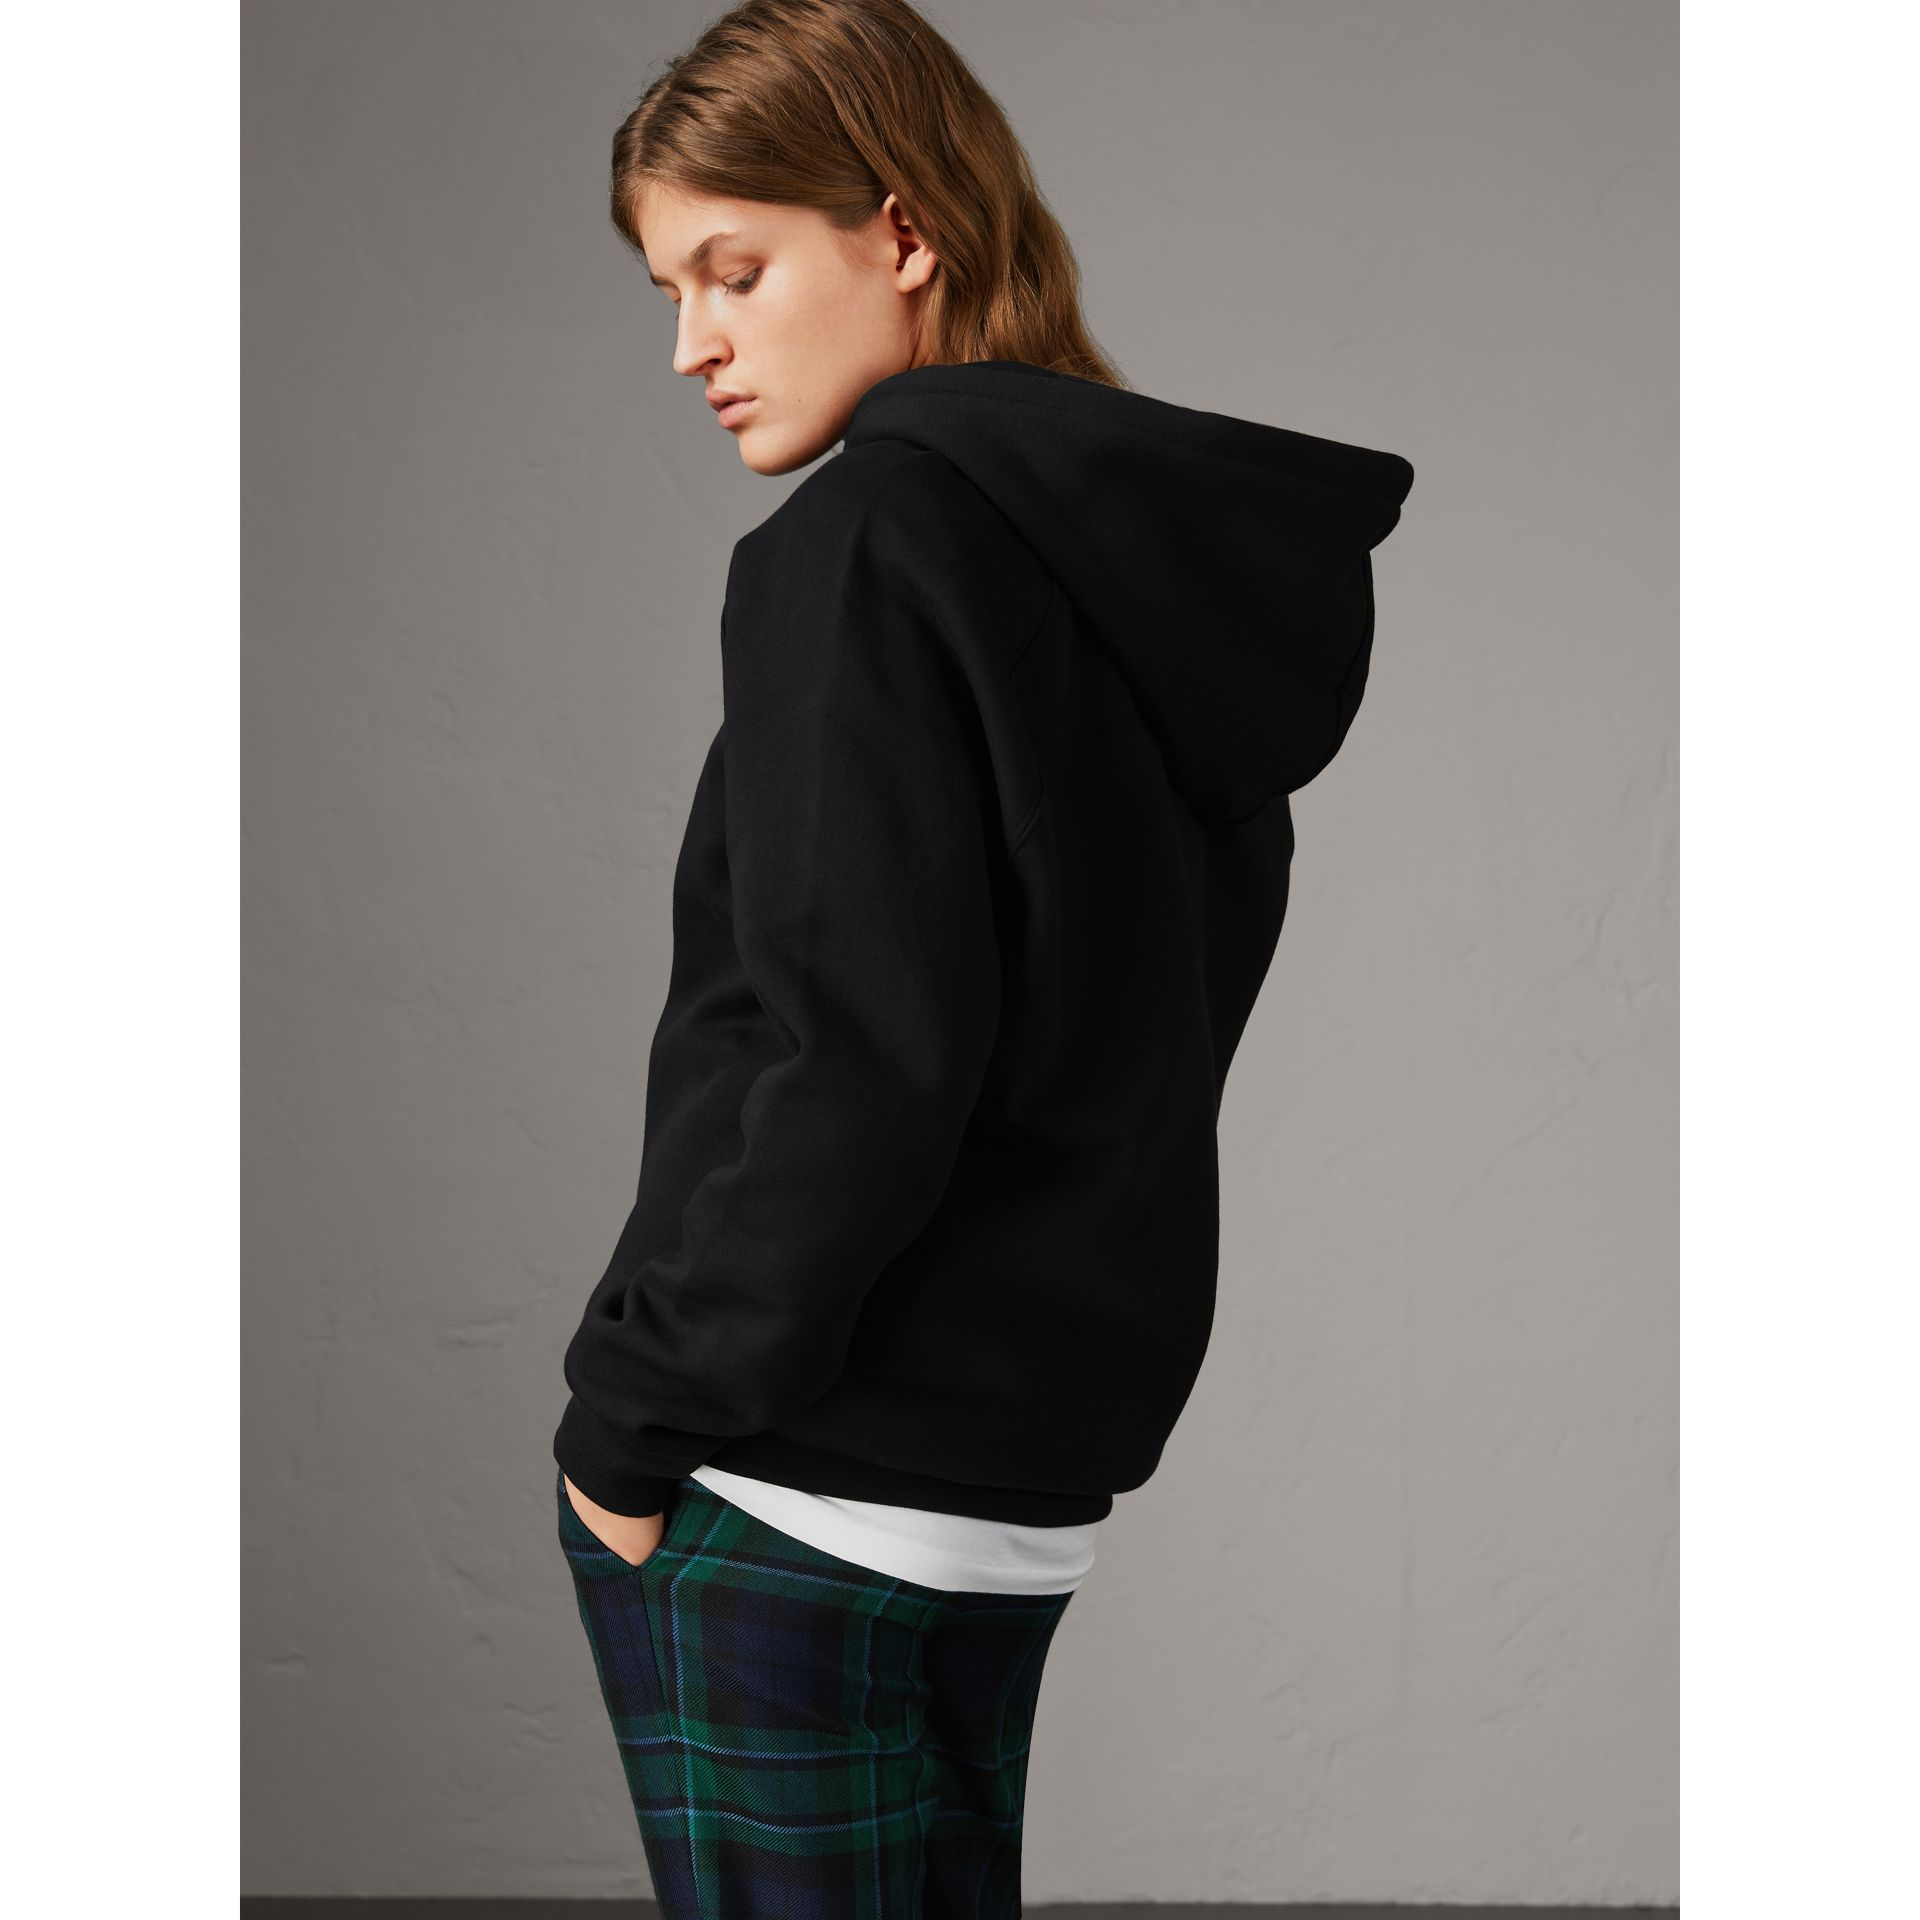 Sweat-shirt brodé à capuche (Noir) - Femme | Burberry - photo de la galerie 2